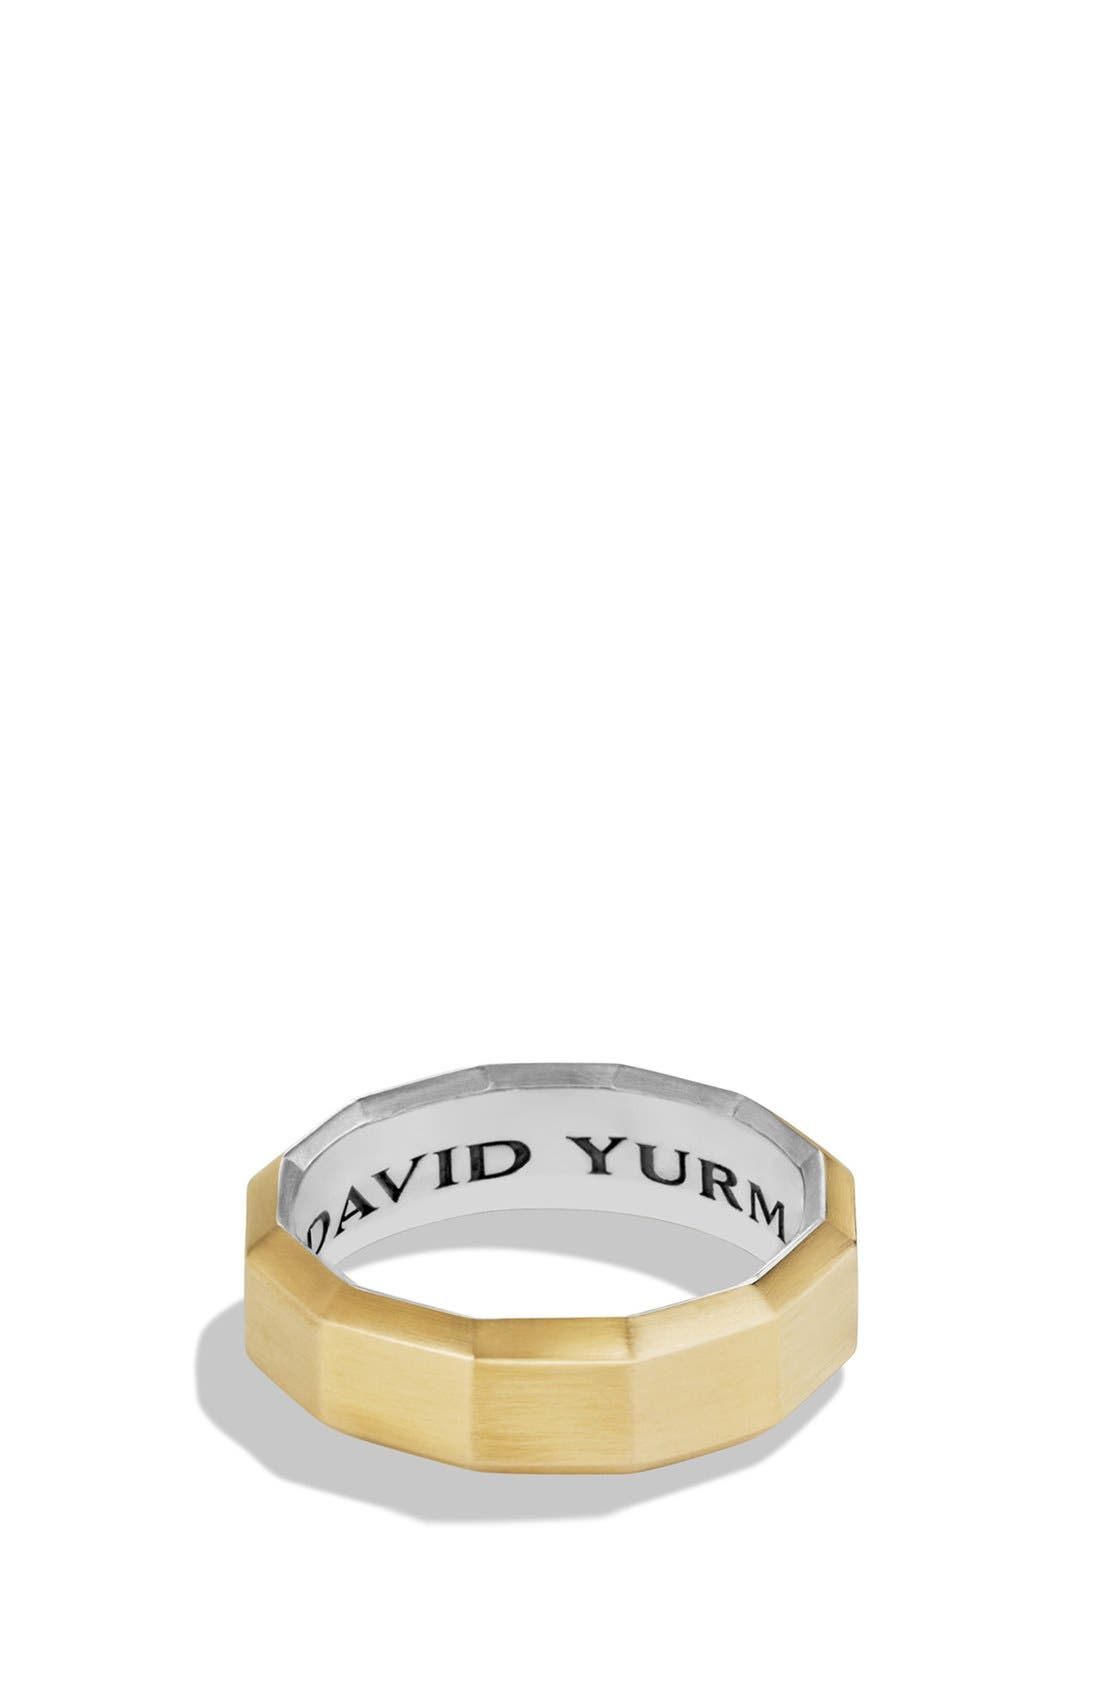 DAVID YURMAN 'Faceted' Metal Ring with 18k Gold